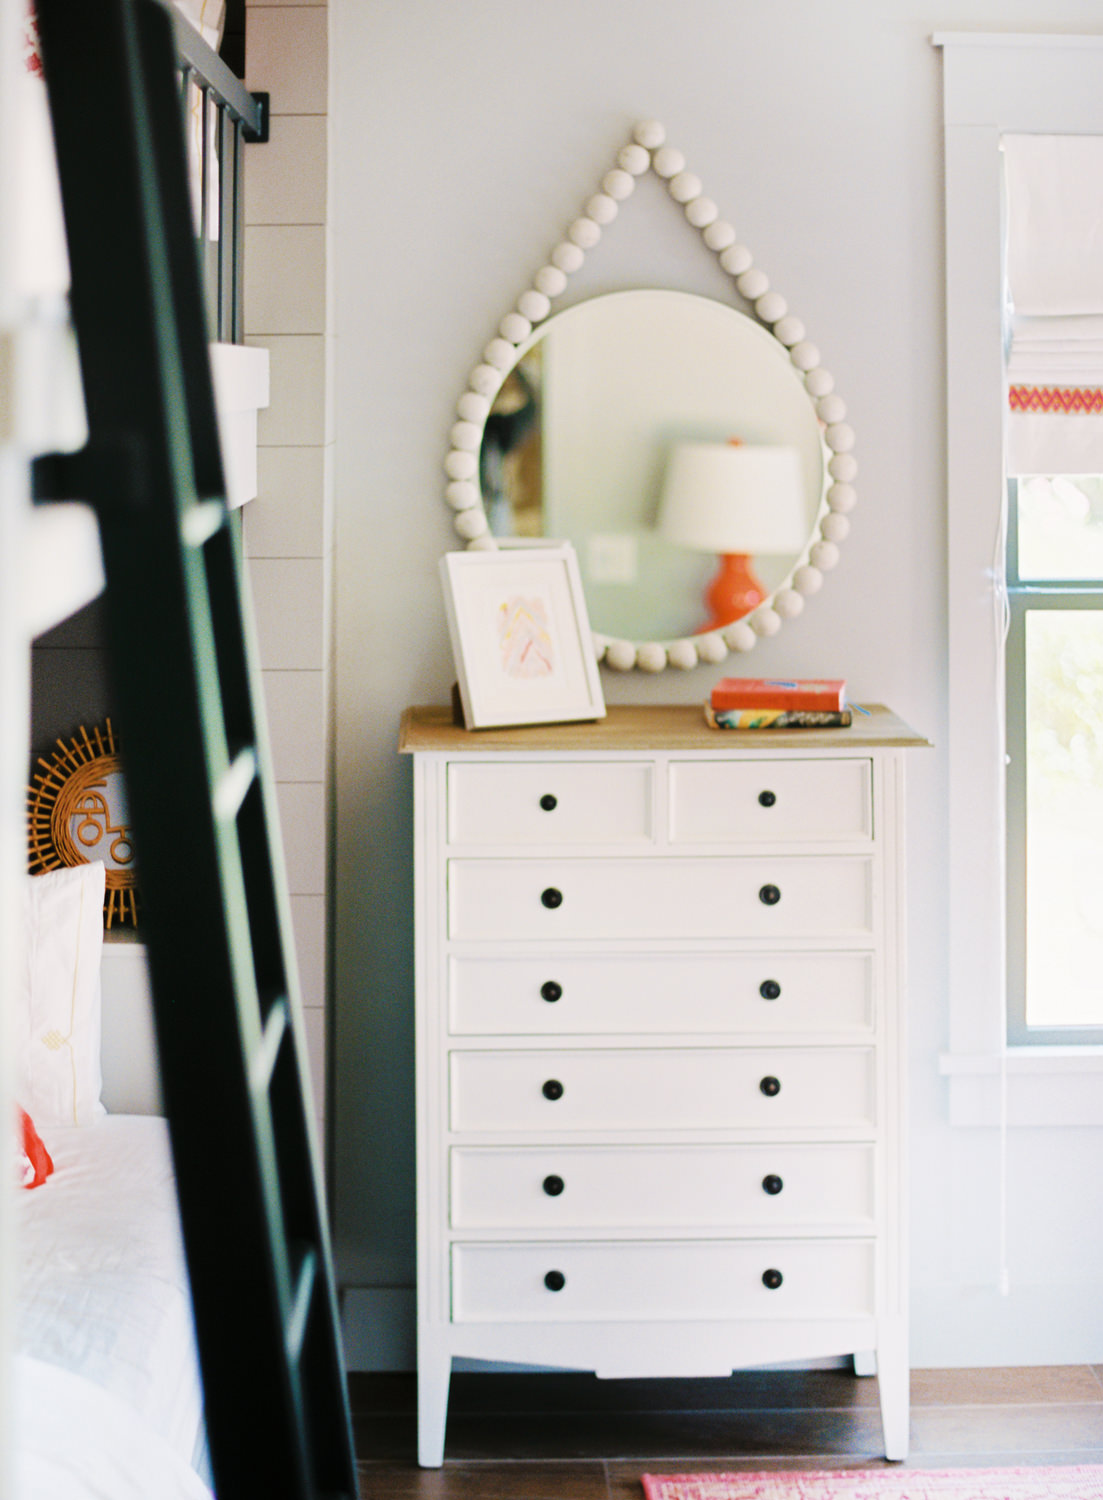 cottrell_photography_interiors-006